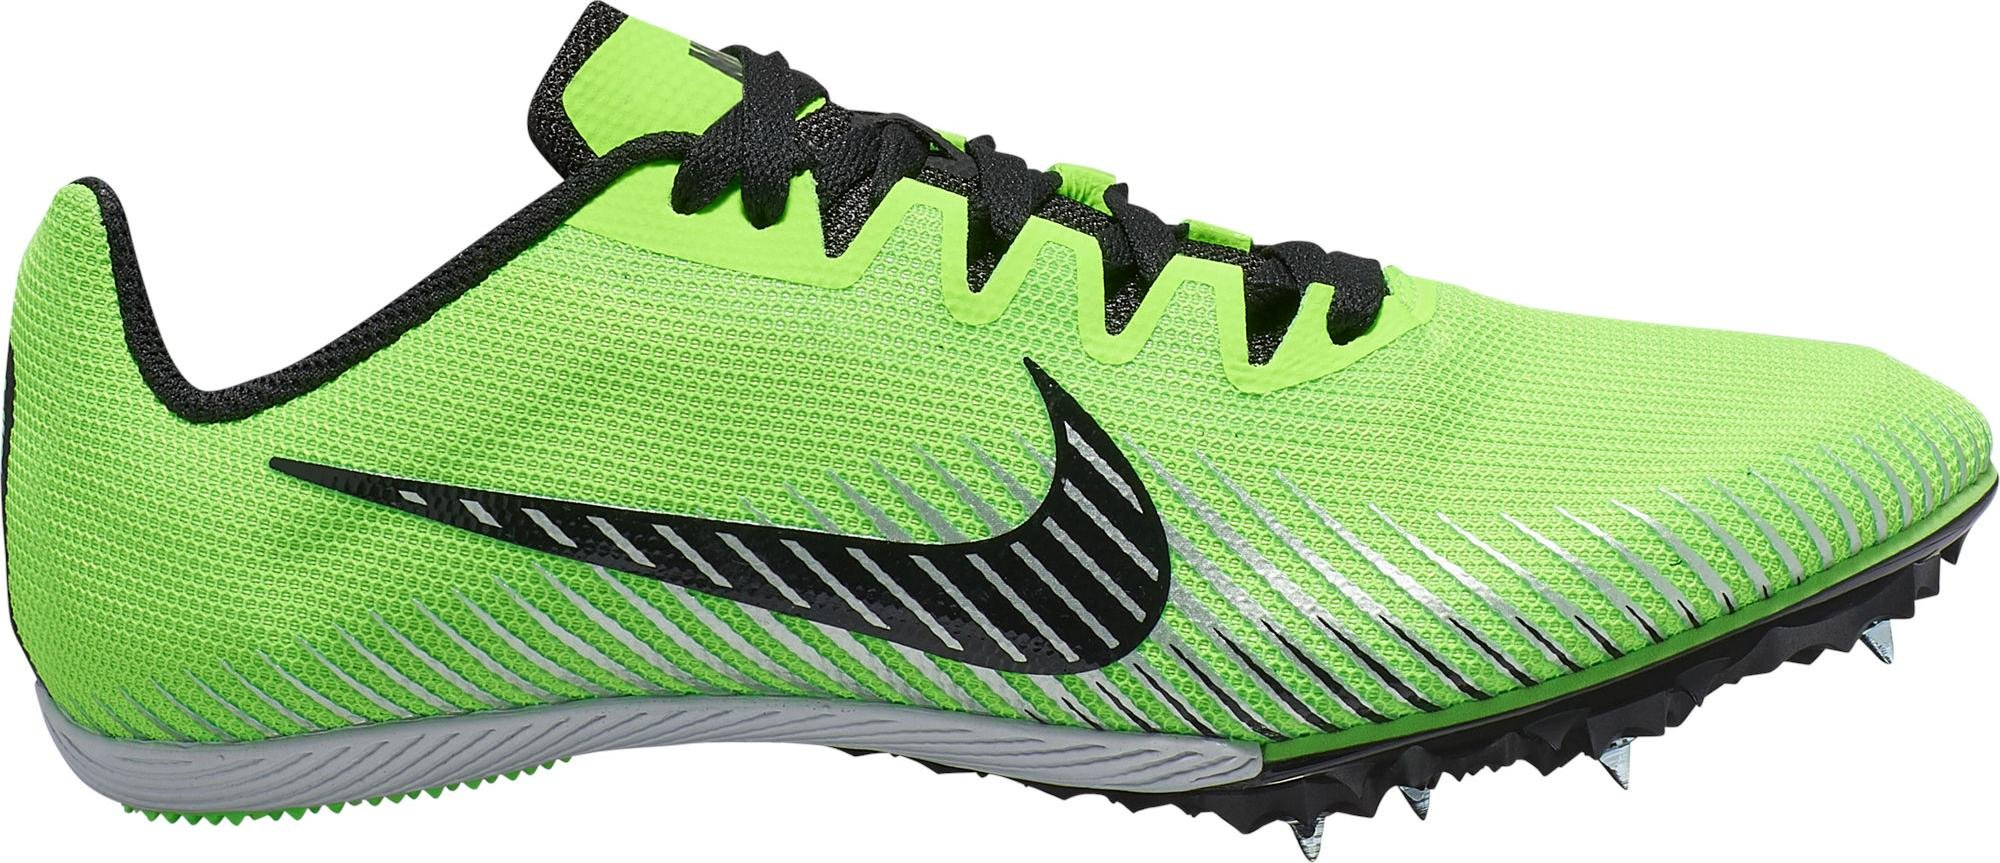 Track shoes/Spikes Nike ZOOM RIVAL M 9